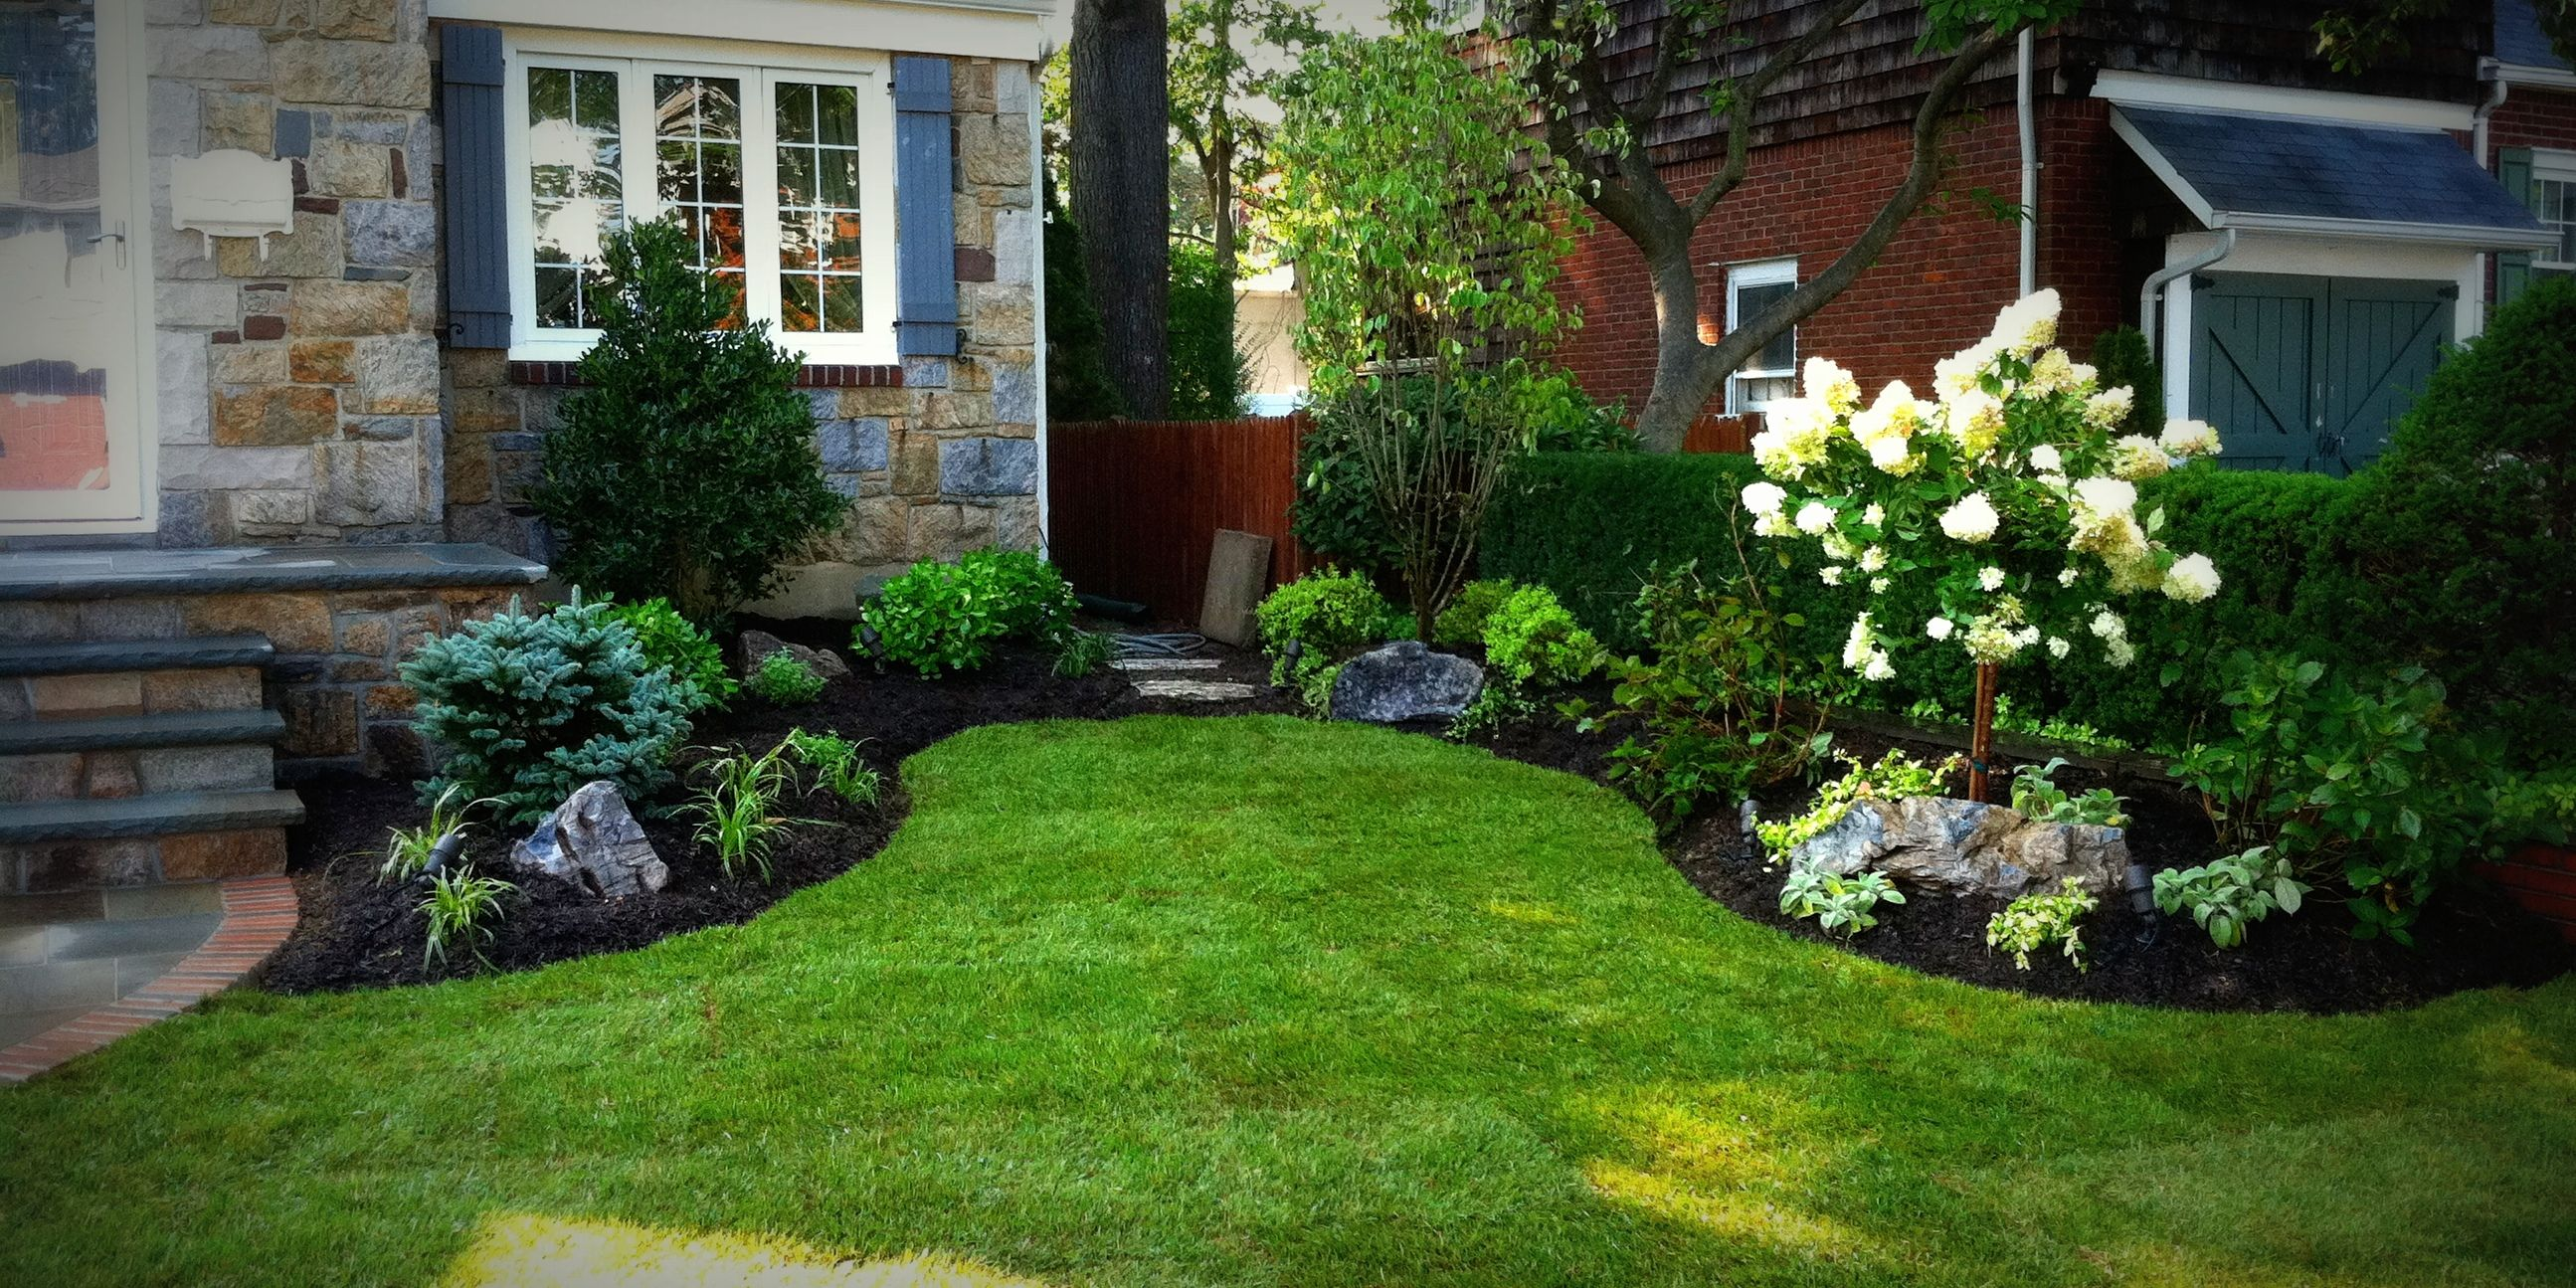 Wiltshire Driveways On Twitter Front Yard Landscaping Design Landscape Design Front Yard Landscaping